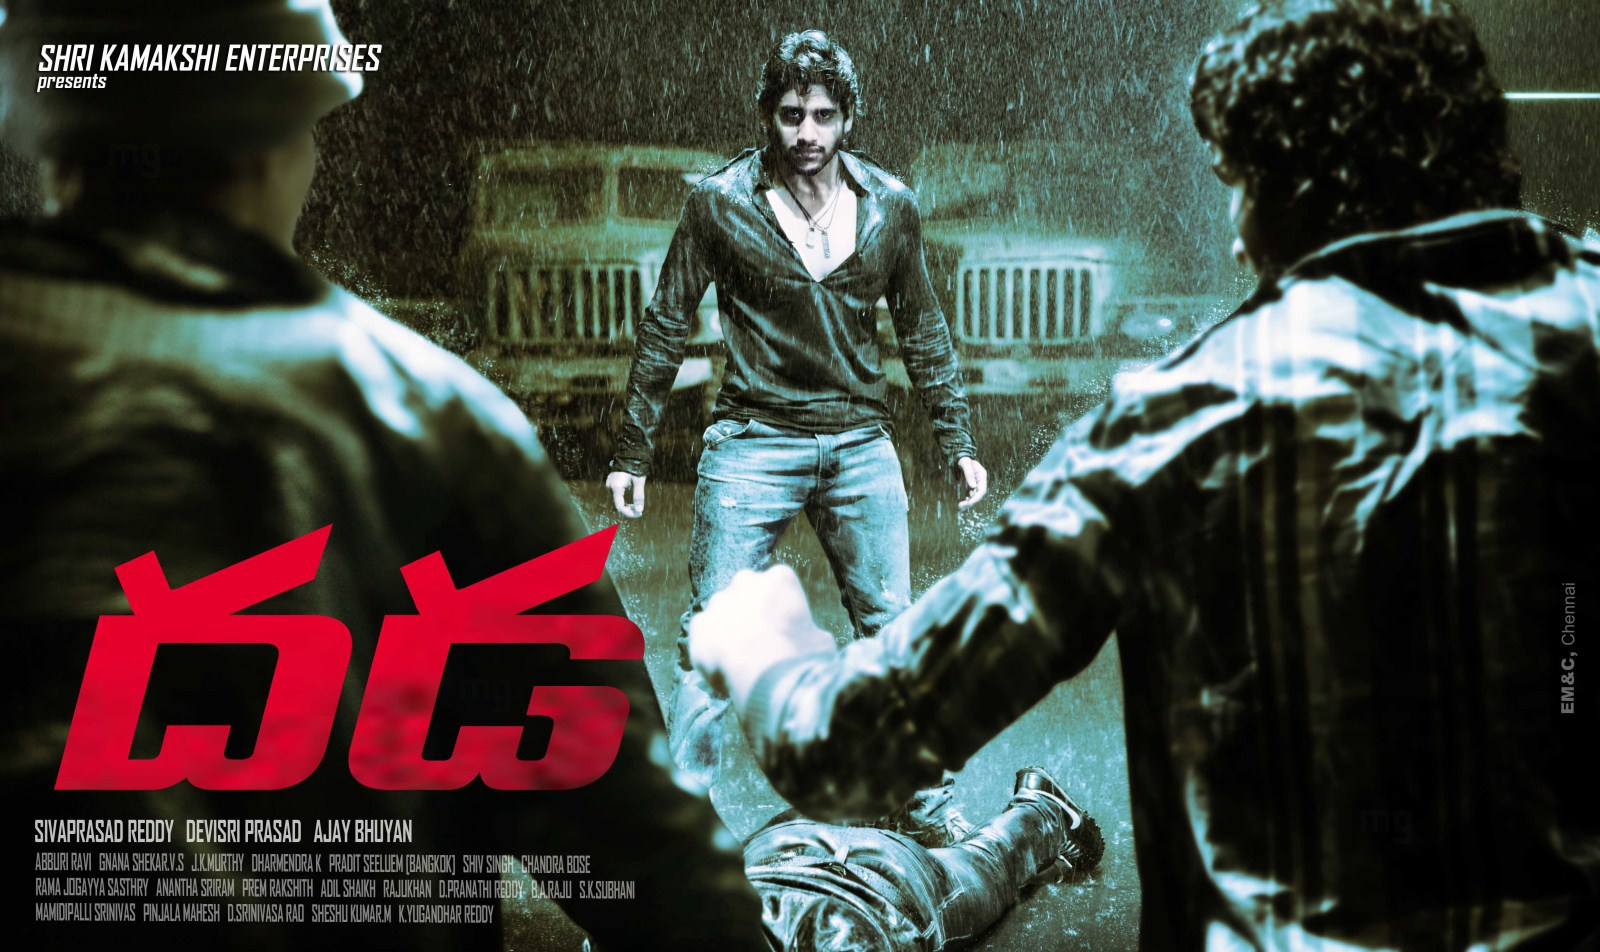 http://1.bp.blogspot.com/-_zYPO0e9gqg/Tet833xUwpI/AAAAAAAAKRU/pyONHOY5uwY/s1600/dhada_telugu_movie_wallpapers_72.jpg